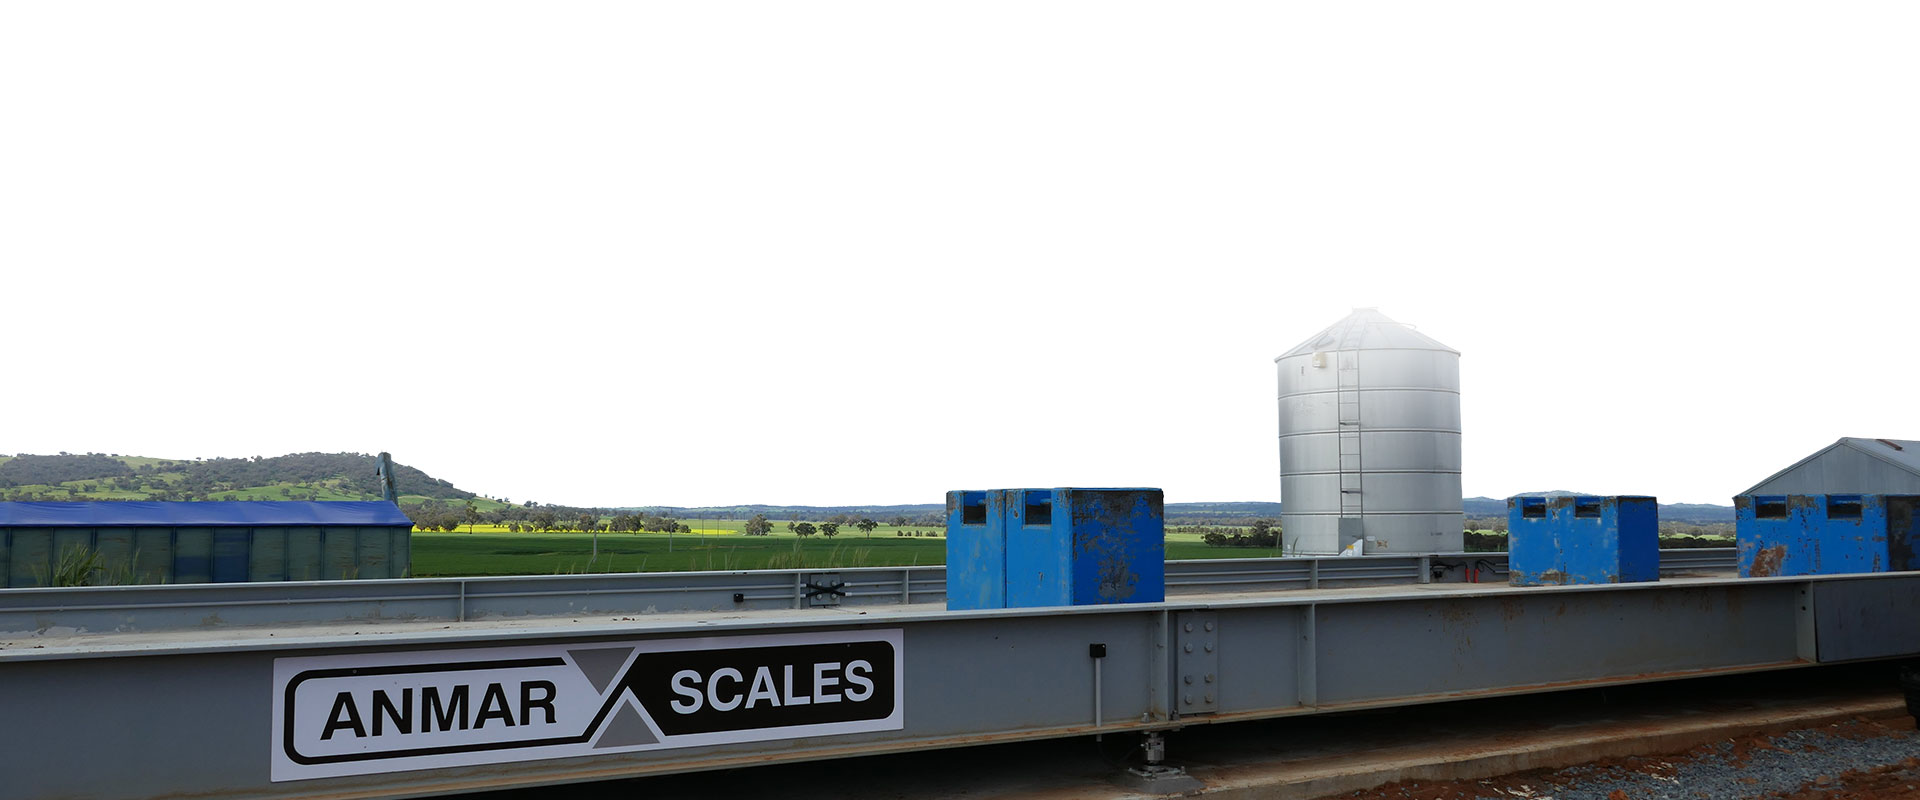 A state-of-the-art weighbridge will boost efficiency and advance your business.